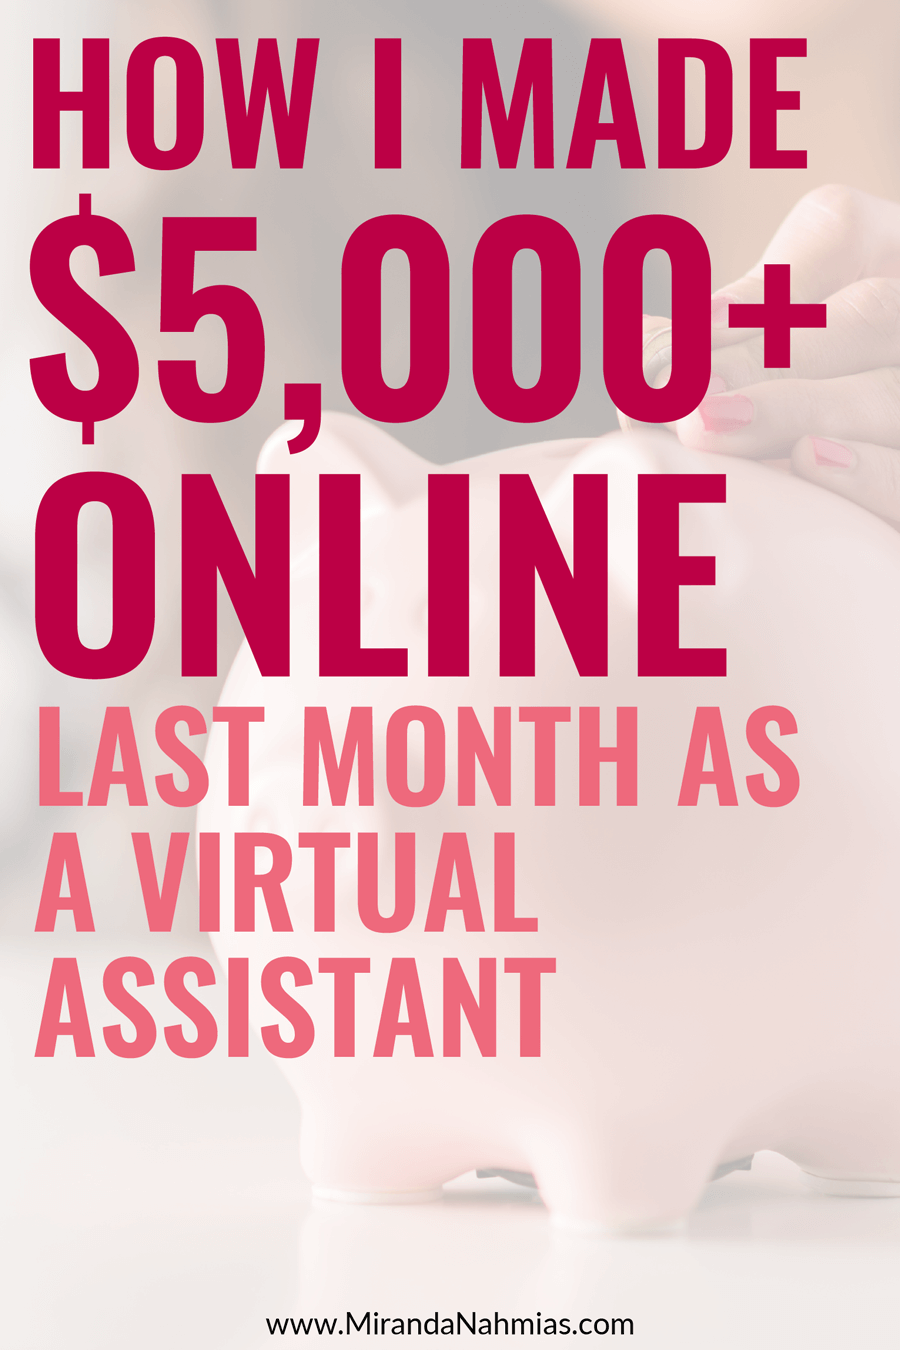 How I Made $5,000+ Online Last Month as a Virtual Assistant // Miranda Nahmias